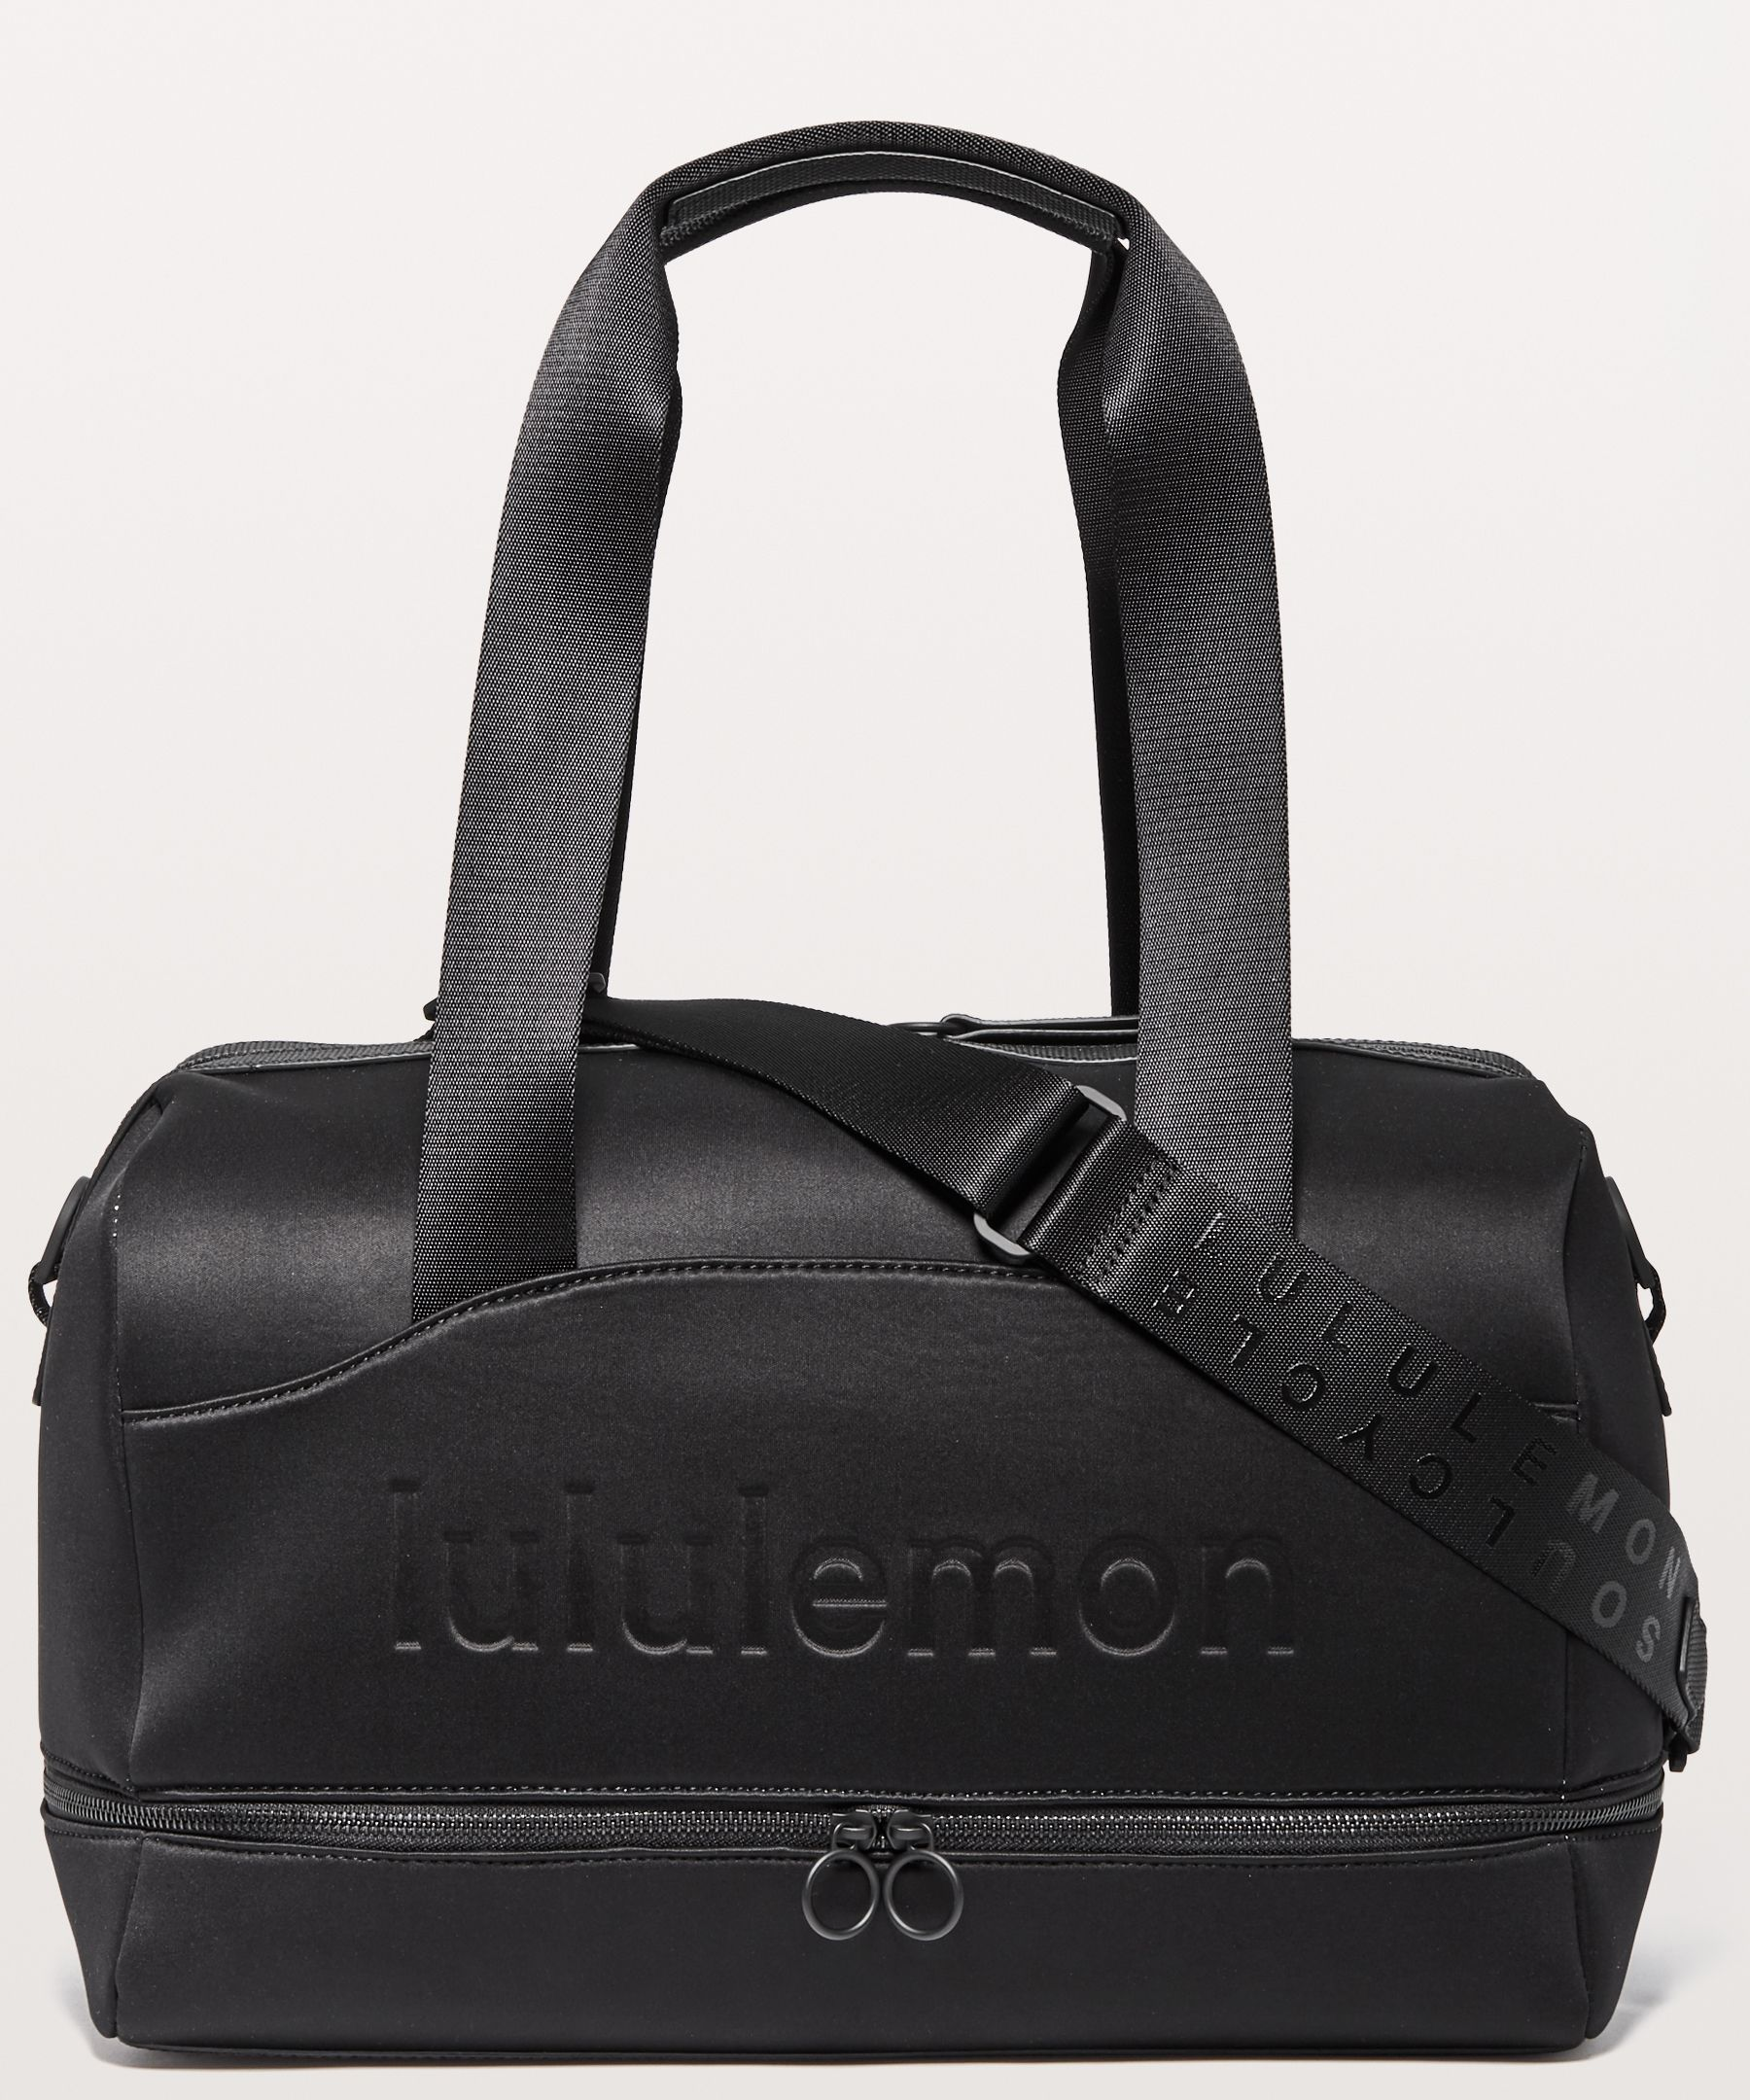 To The Beat Duffel Lululemon X Soul Cycle New by Lululemon